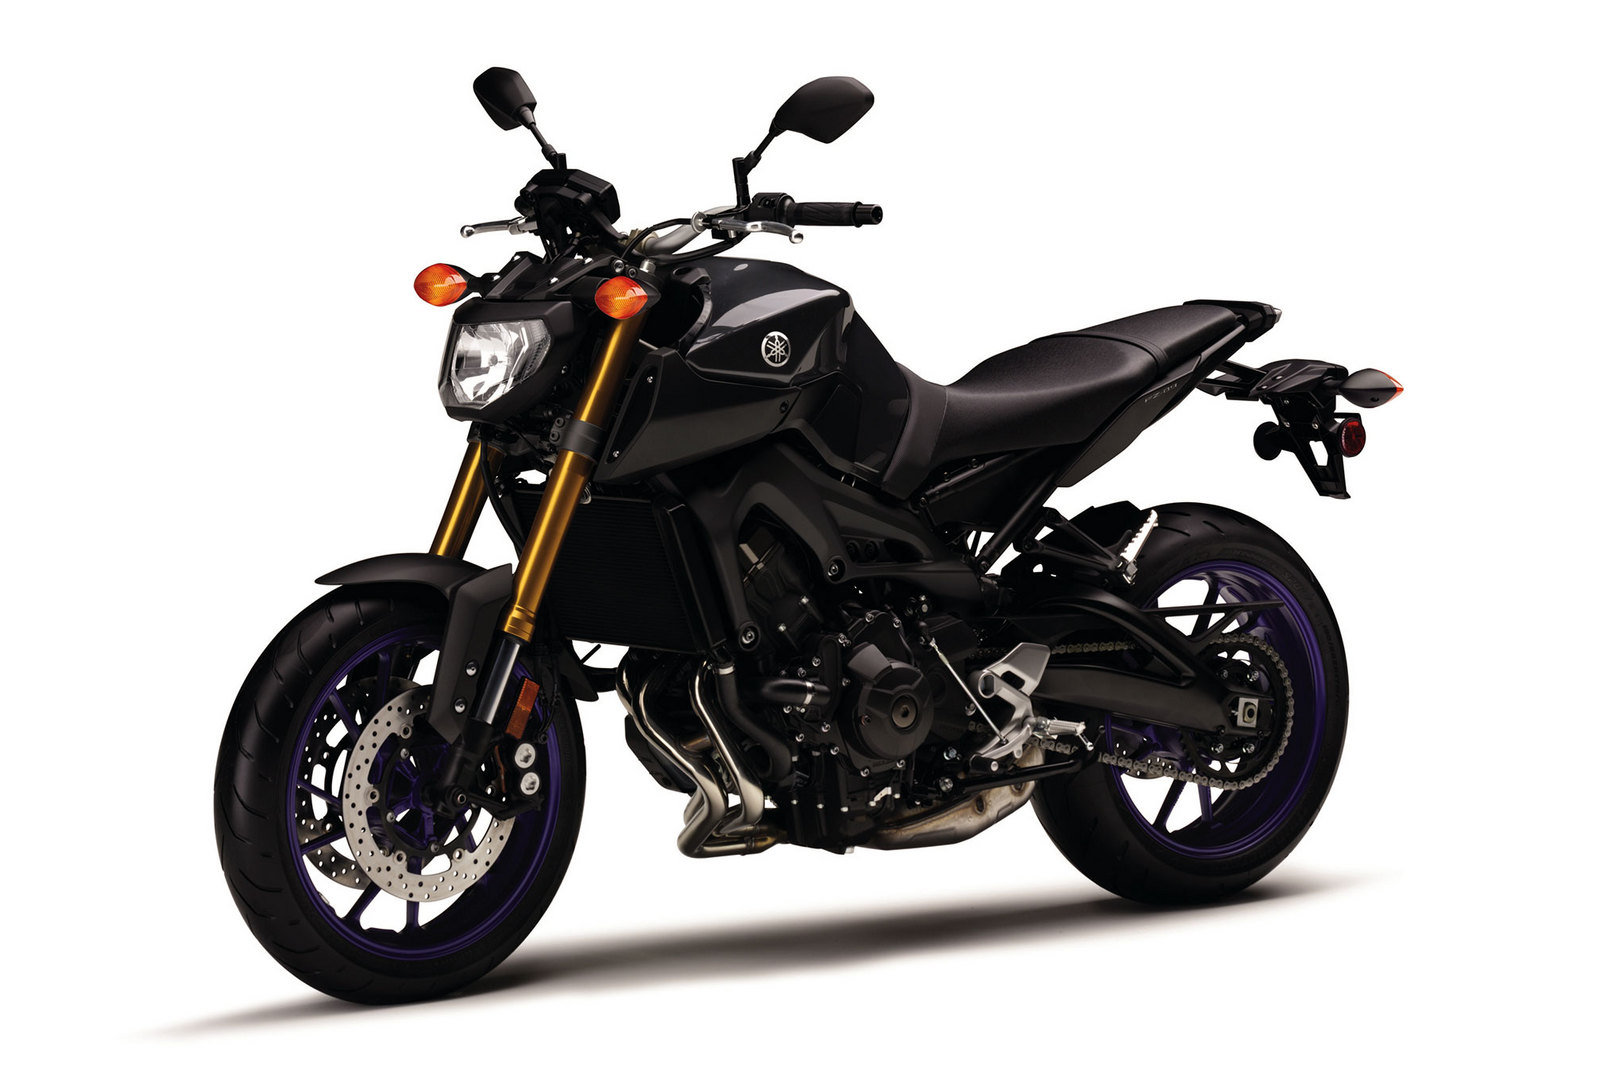 2014 Yamaha Fz 09 Top Speed